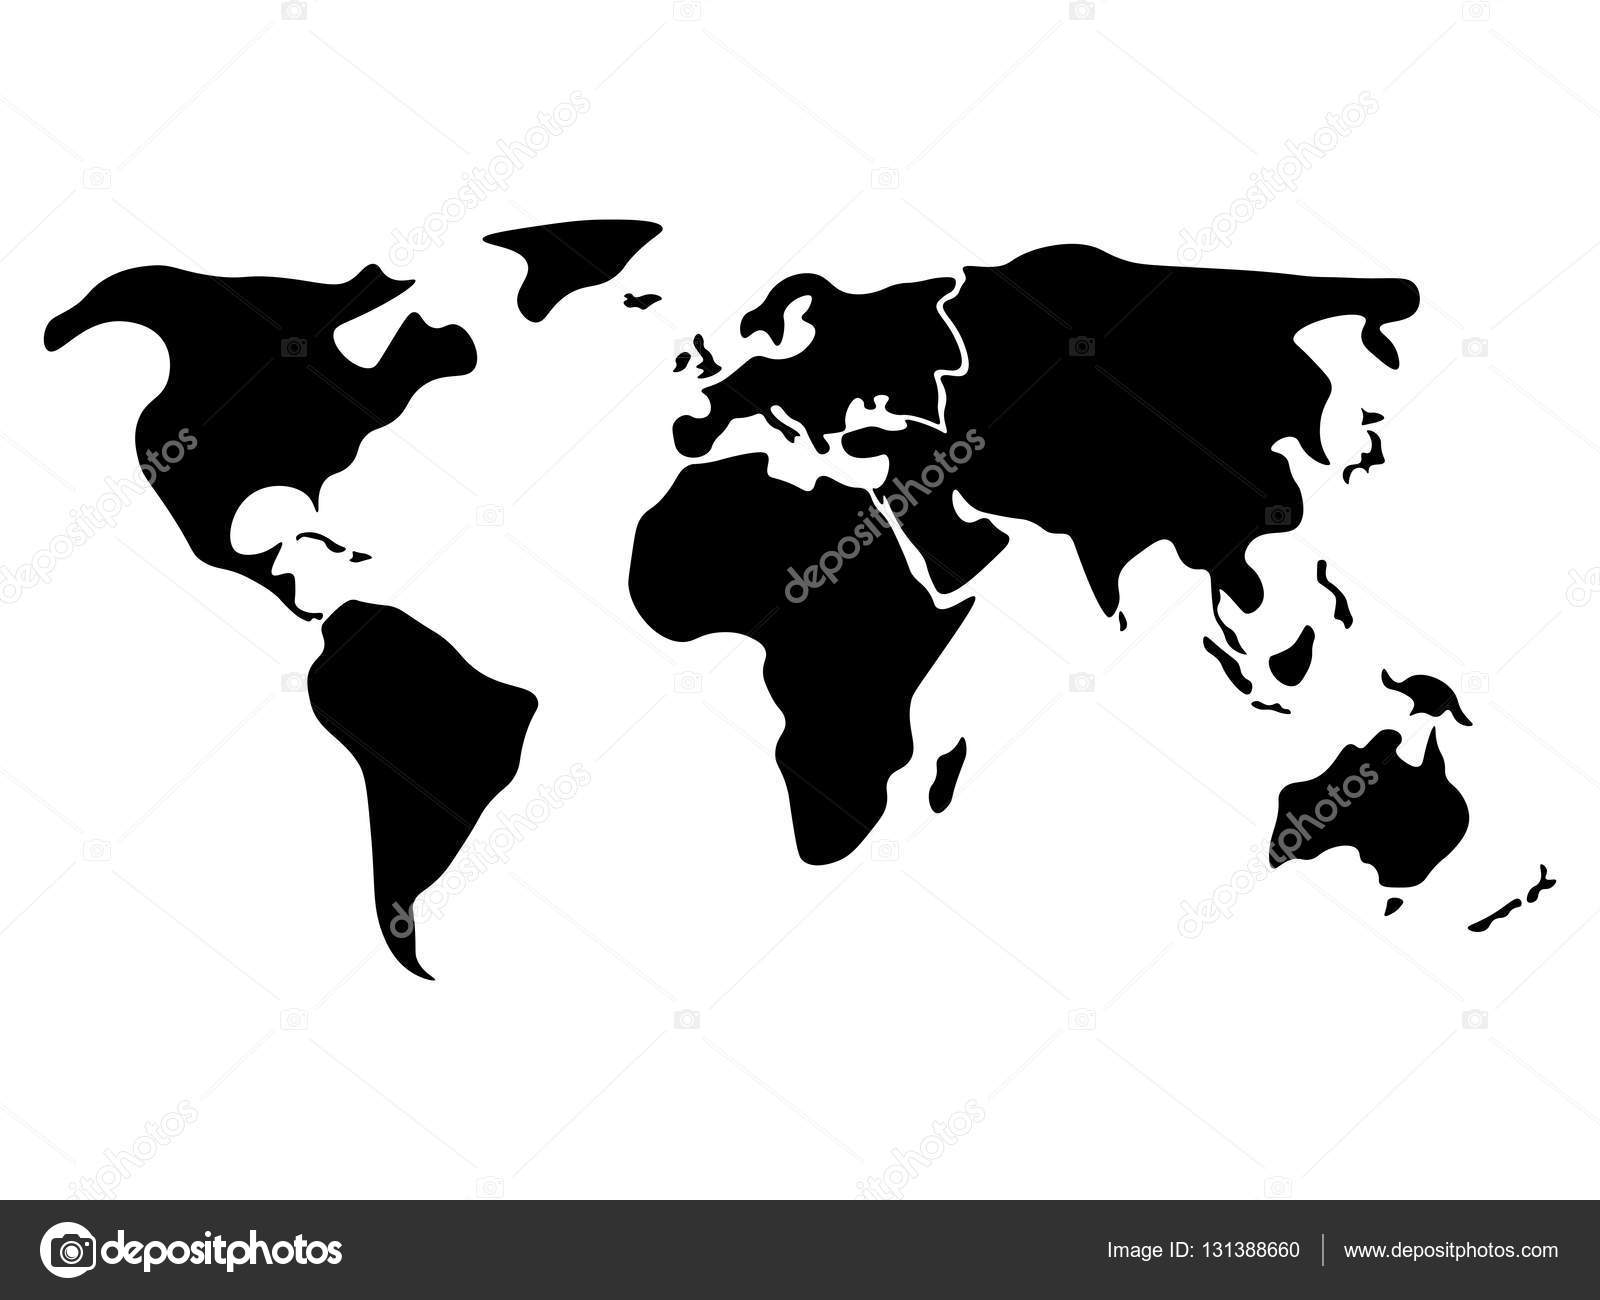 Black simplified world map divided to continents stock vector world map divided to six continents in black north america south america africa europe asia and australia oceania simplified silhouette blank vector publicscrutiny Image collections